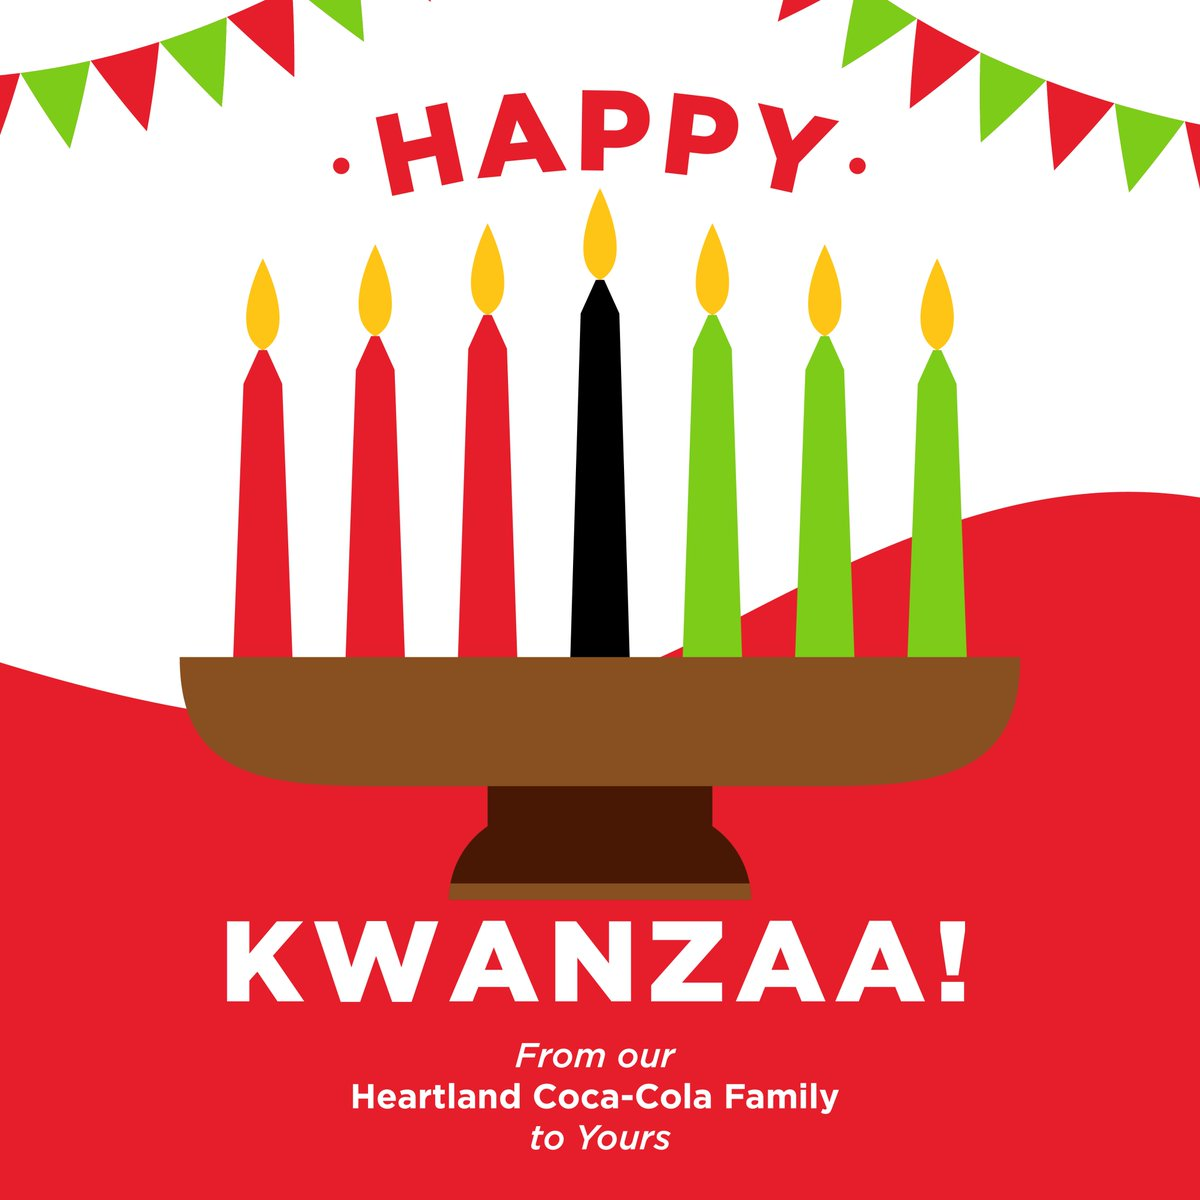 Wishing everyone a Happy Kwanzaa! We hope these next seven days bring you time to enjoy the blessings of family, community, and togetherness. #happykwanzaa